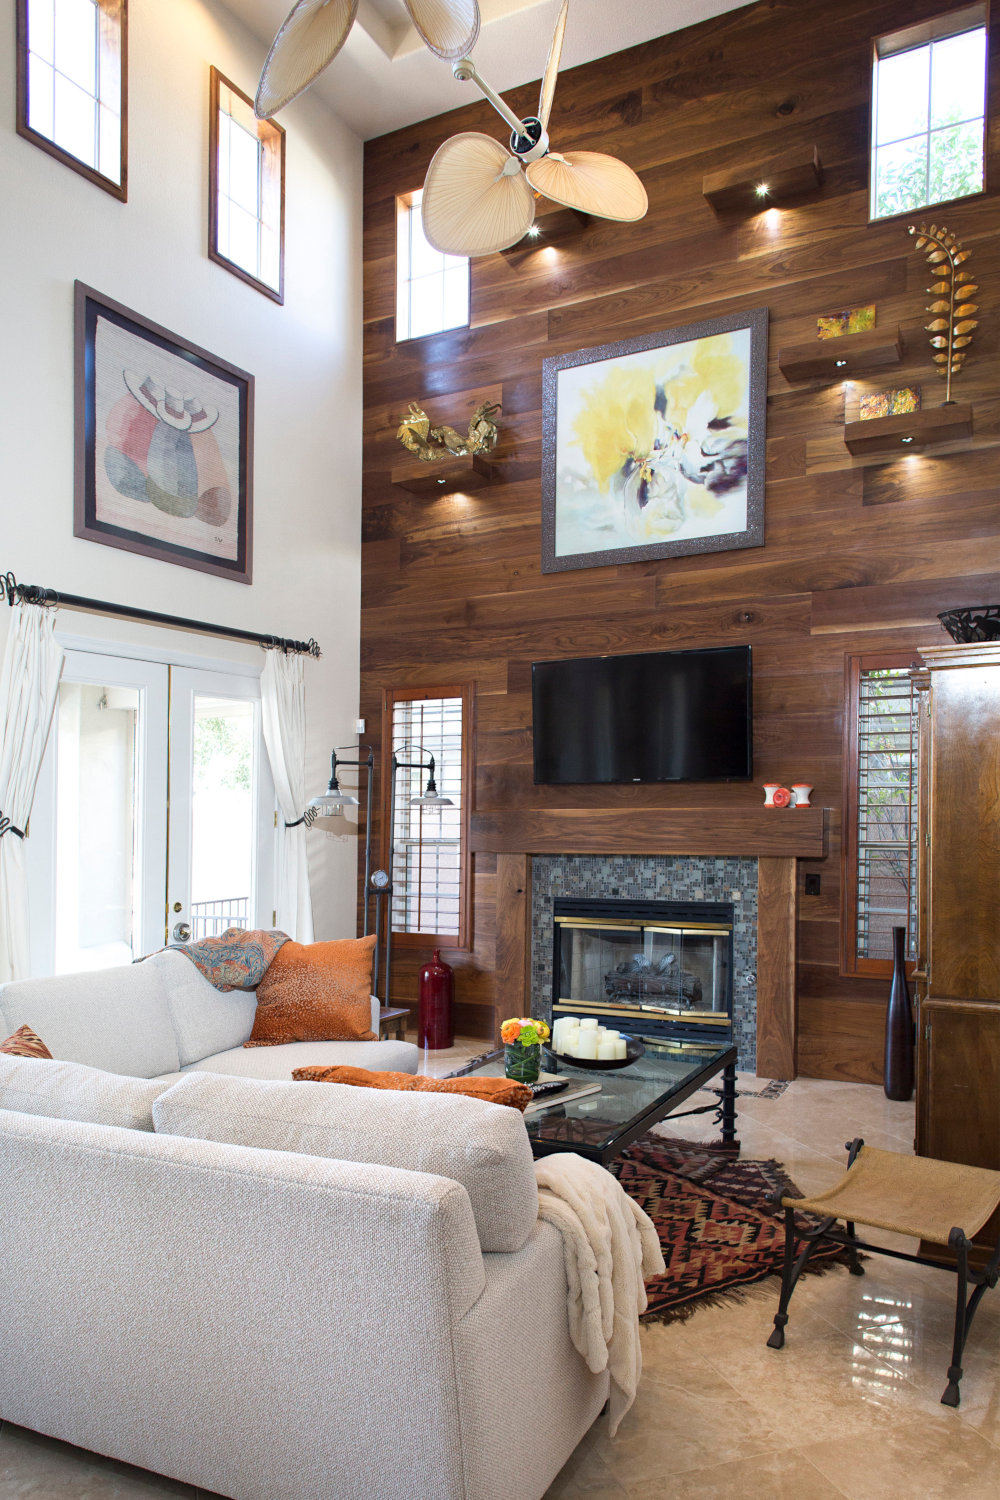 Family room with tall wood paneled wall and fireplace. White sectional setting.